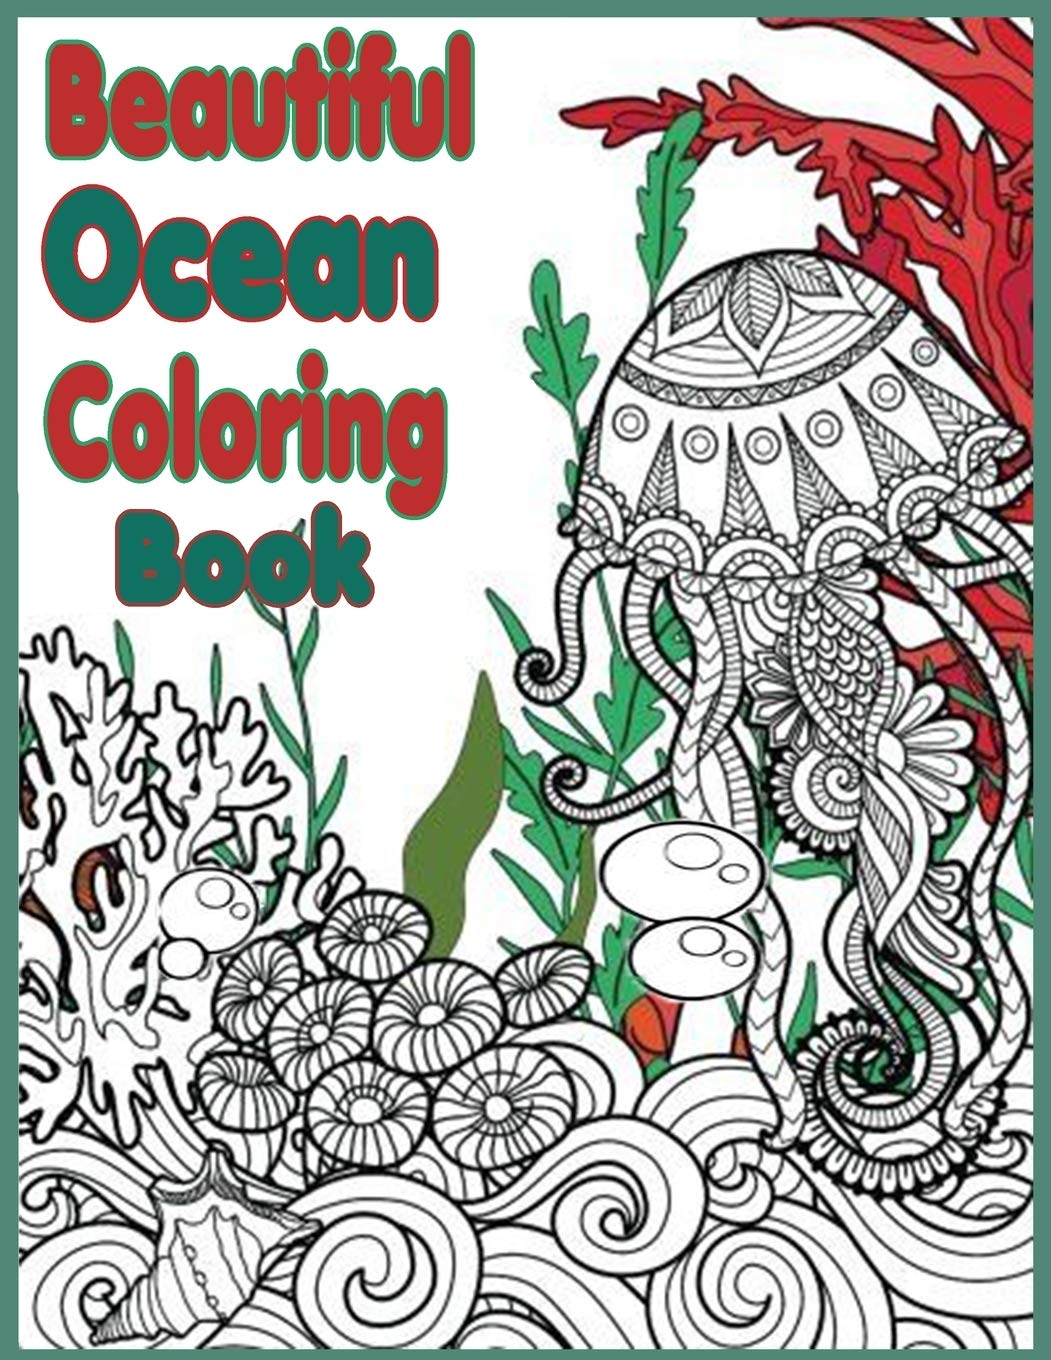 Beautiful Ocean Coloring Book A Coloring Book For Kids Ages 4 8 Features Beautiful Ocean Animals To Color In J Marshall Anita 9798673731772 Amazon Com Books